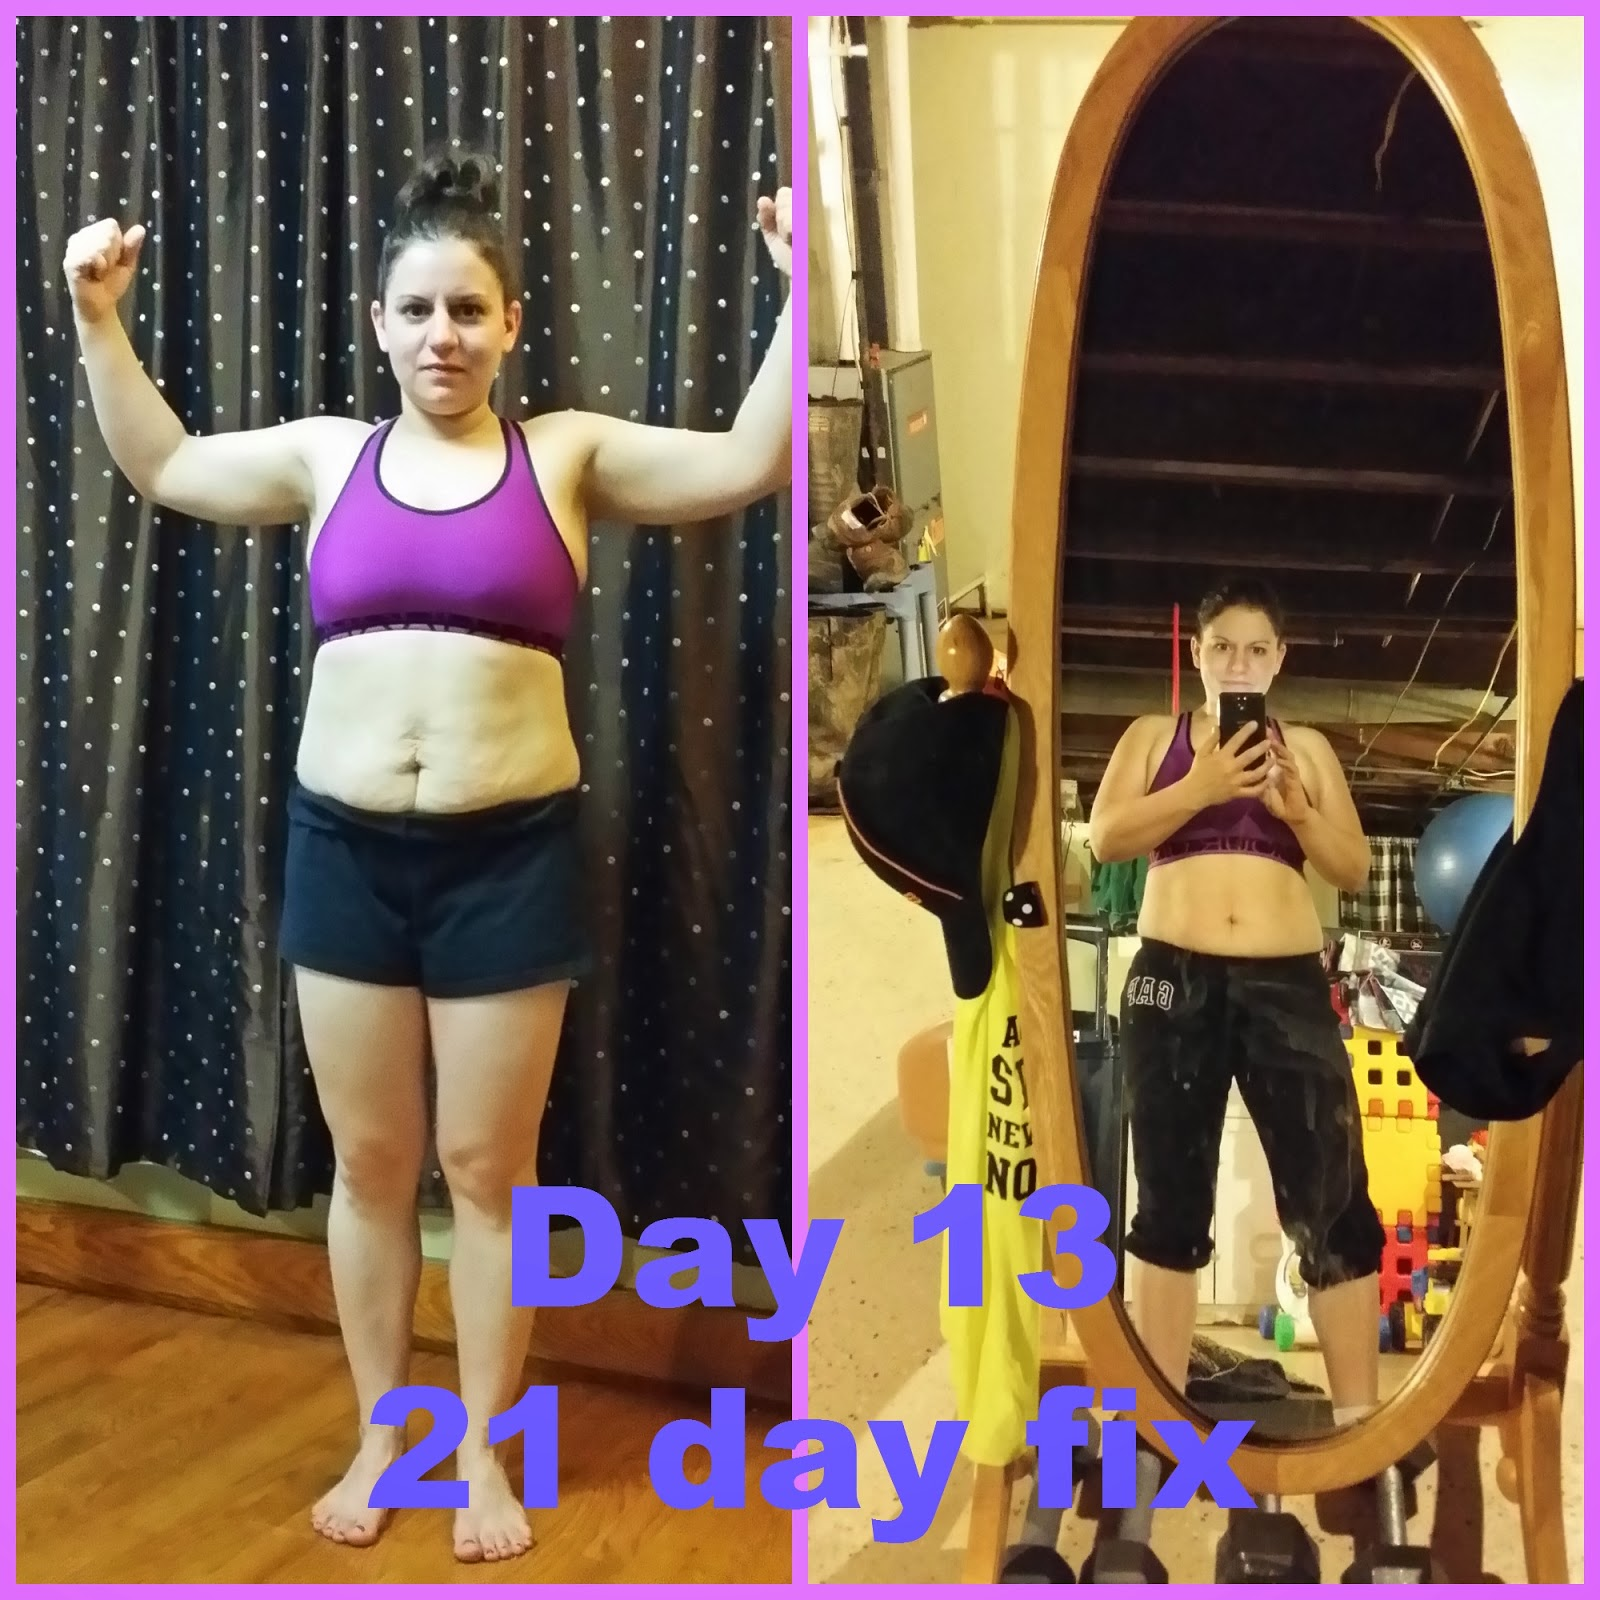 21 day fix progress